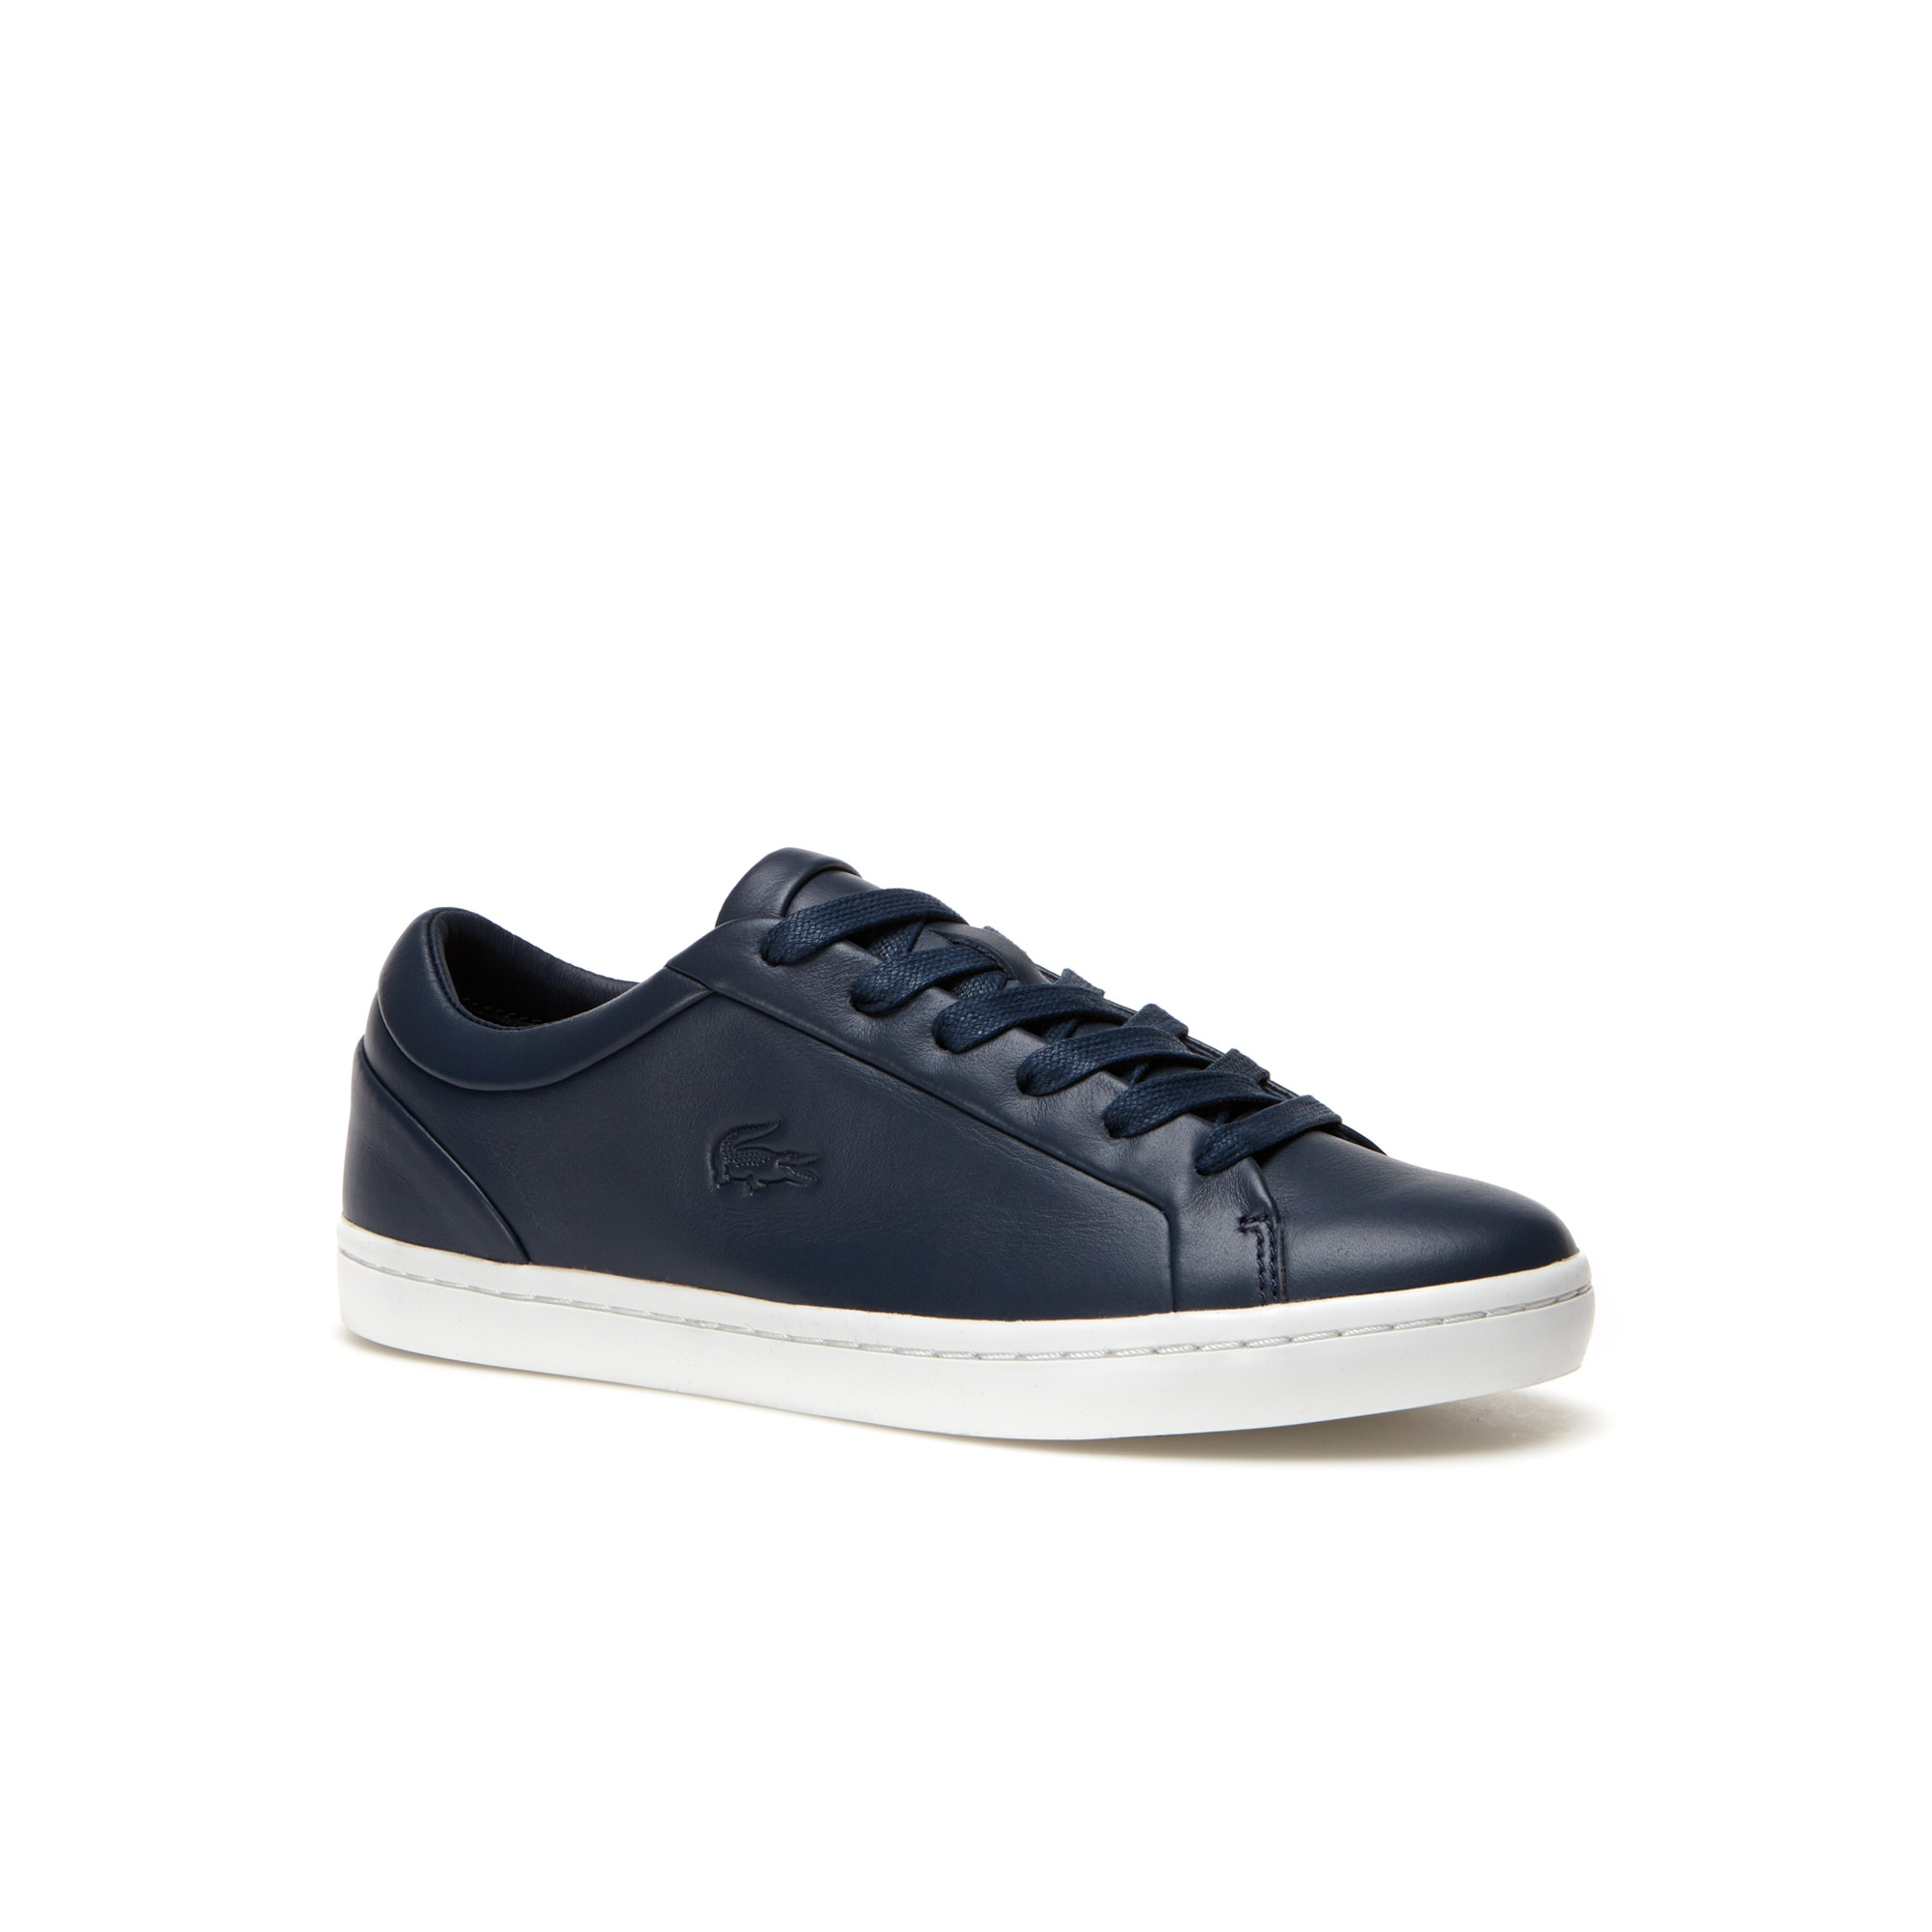 Lacoste Straightset premium leather trainers Q8614 shoes online hot sale